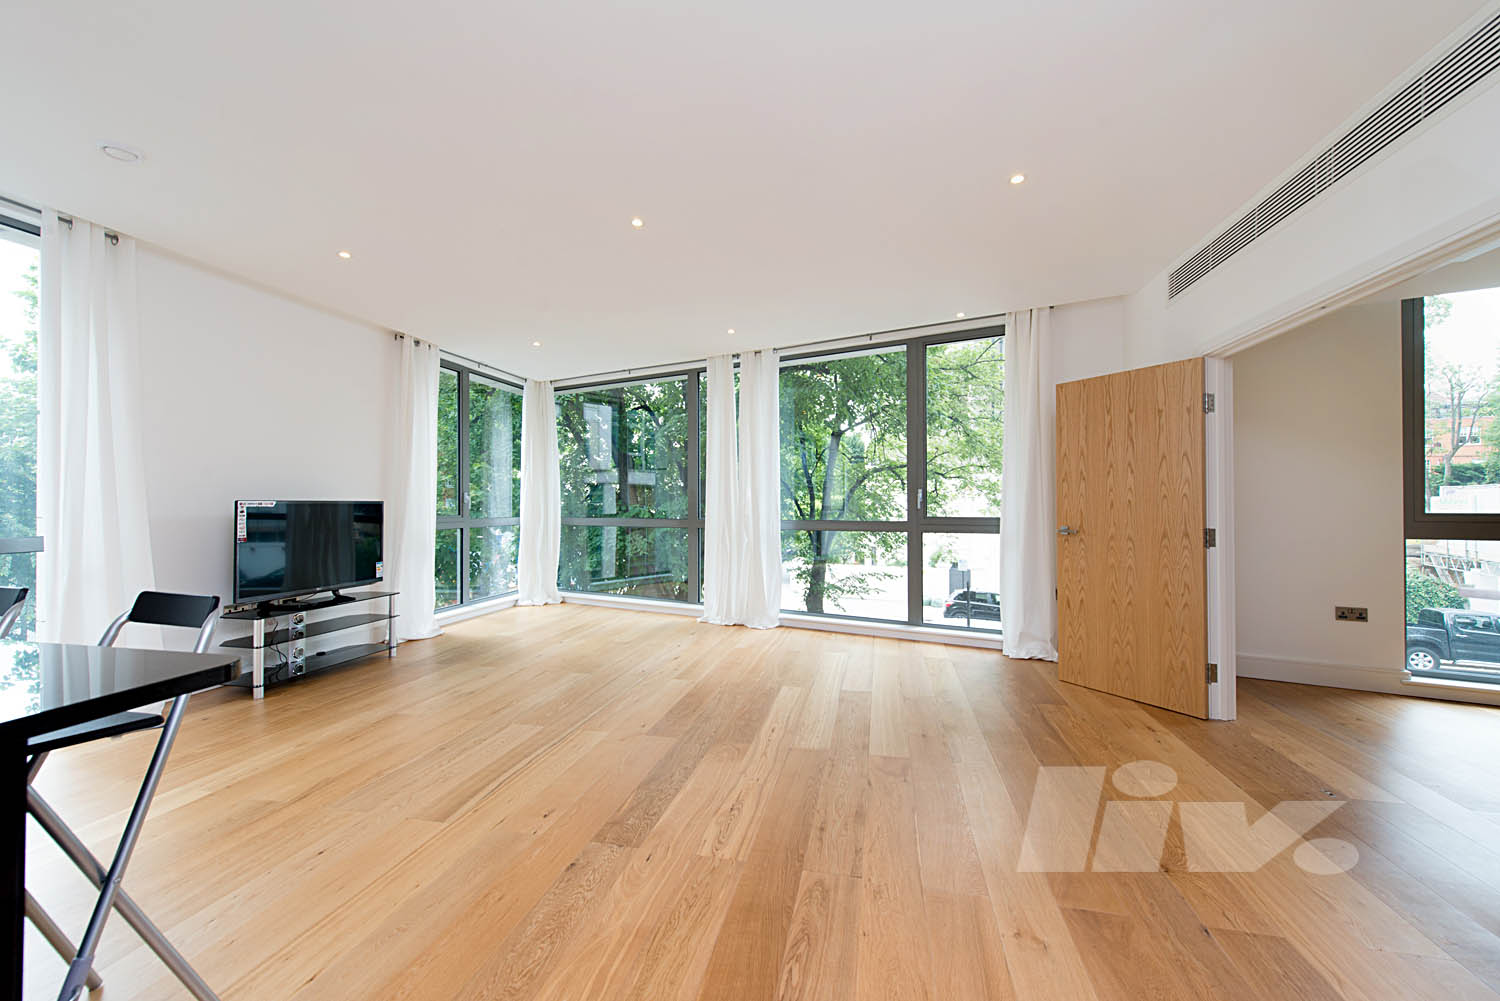 Property details: Let By Liv - Winchester Road, Swiss Cottage, NW3